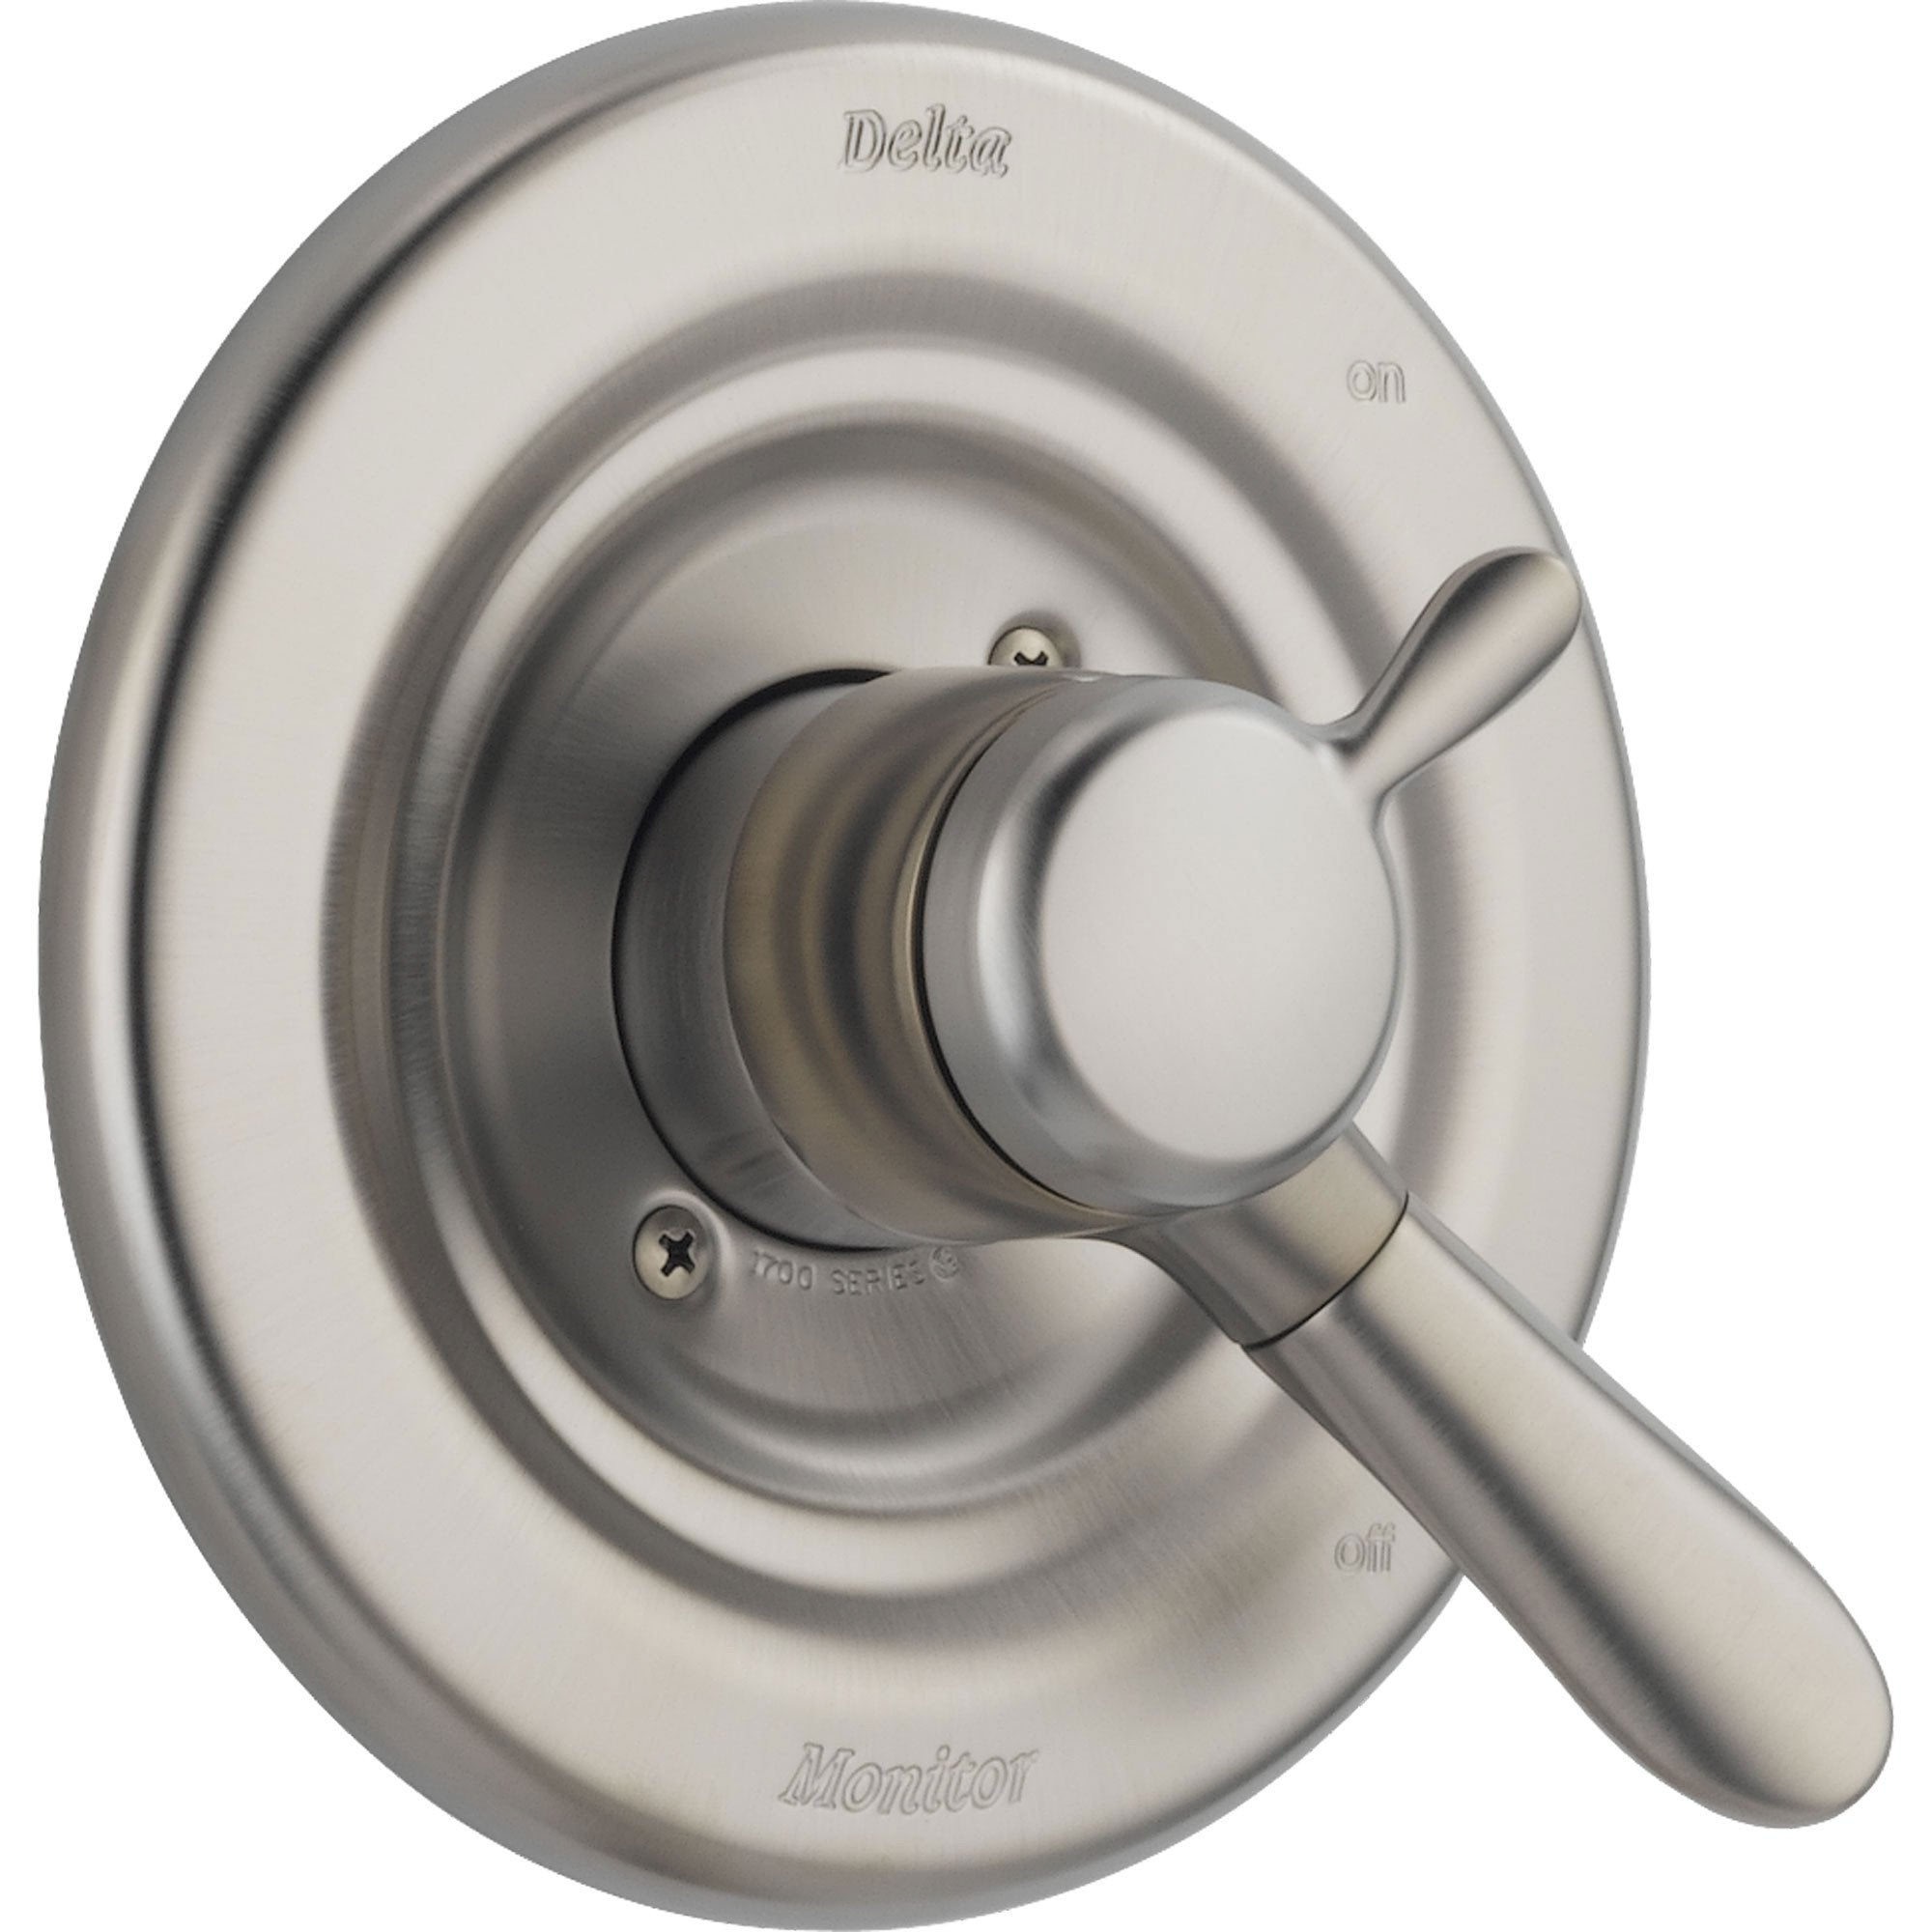 Delta Temperature & Volume Control Stainless Steel Finish Shower w/ Valve D115V